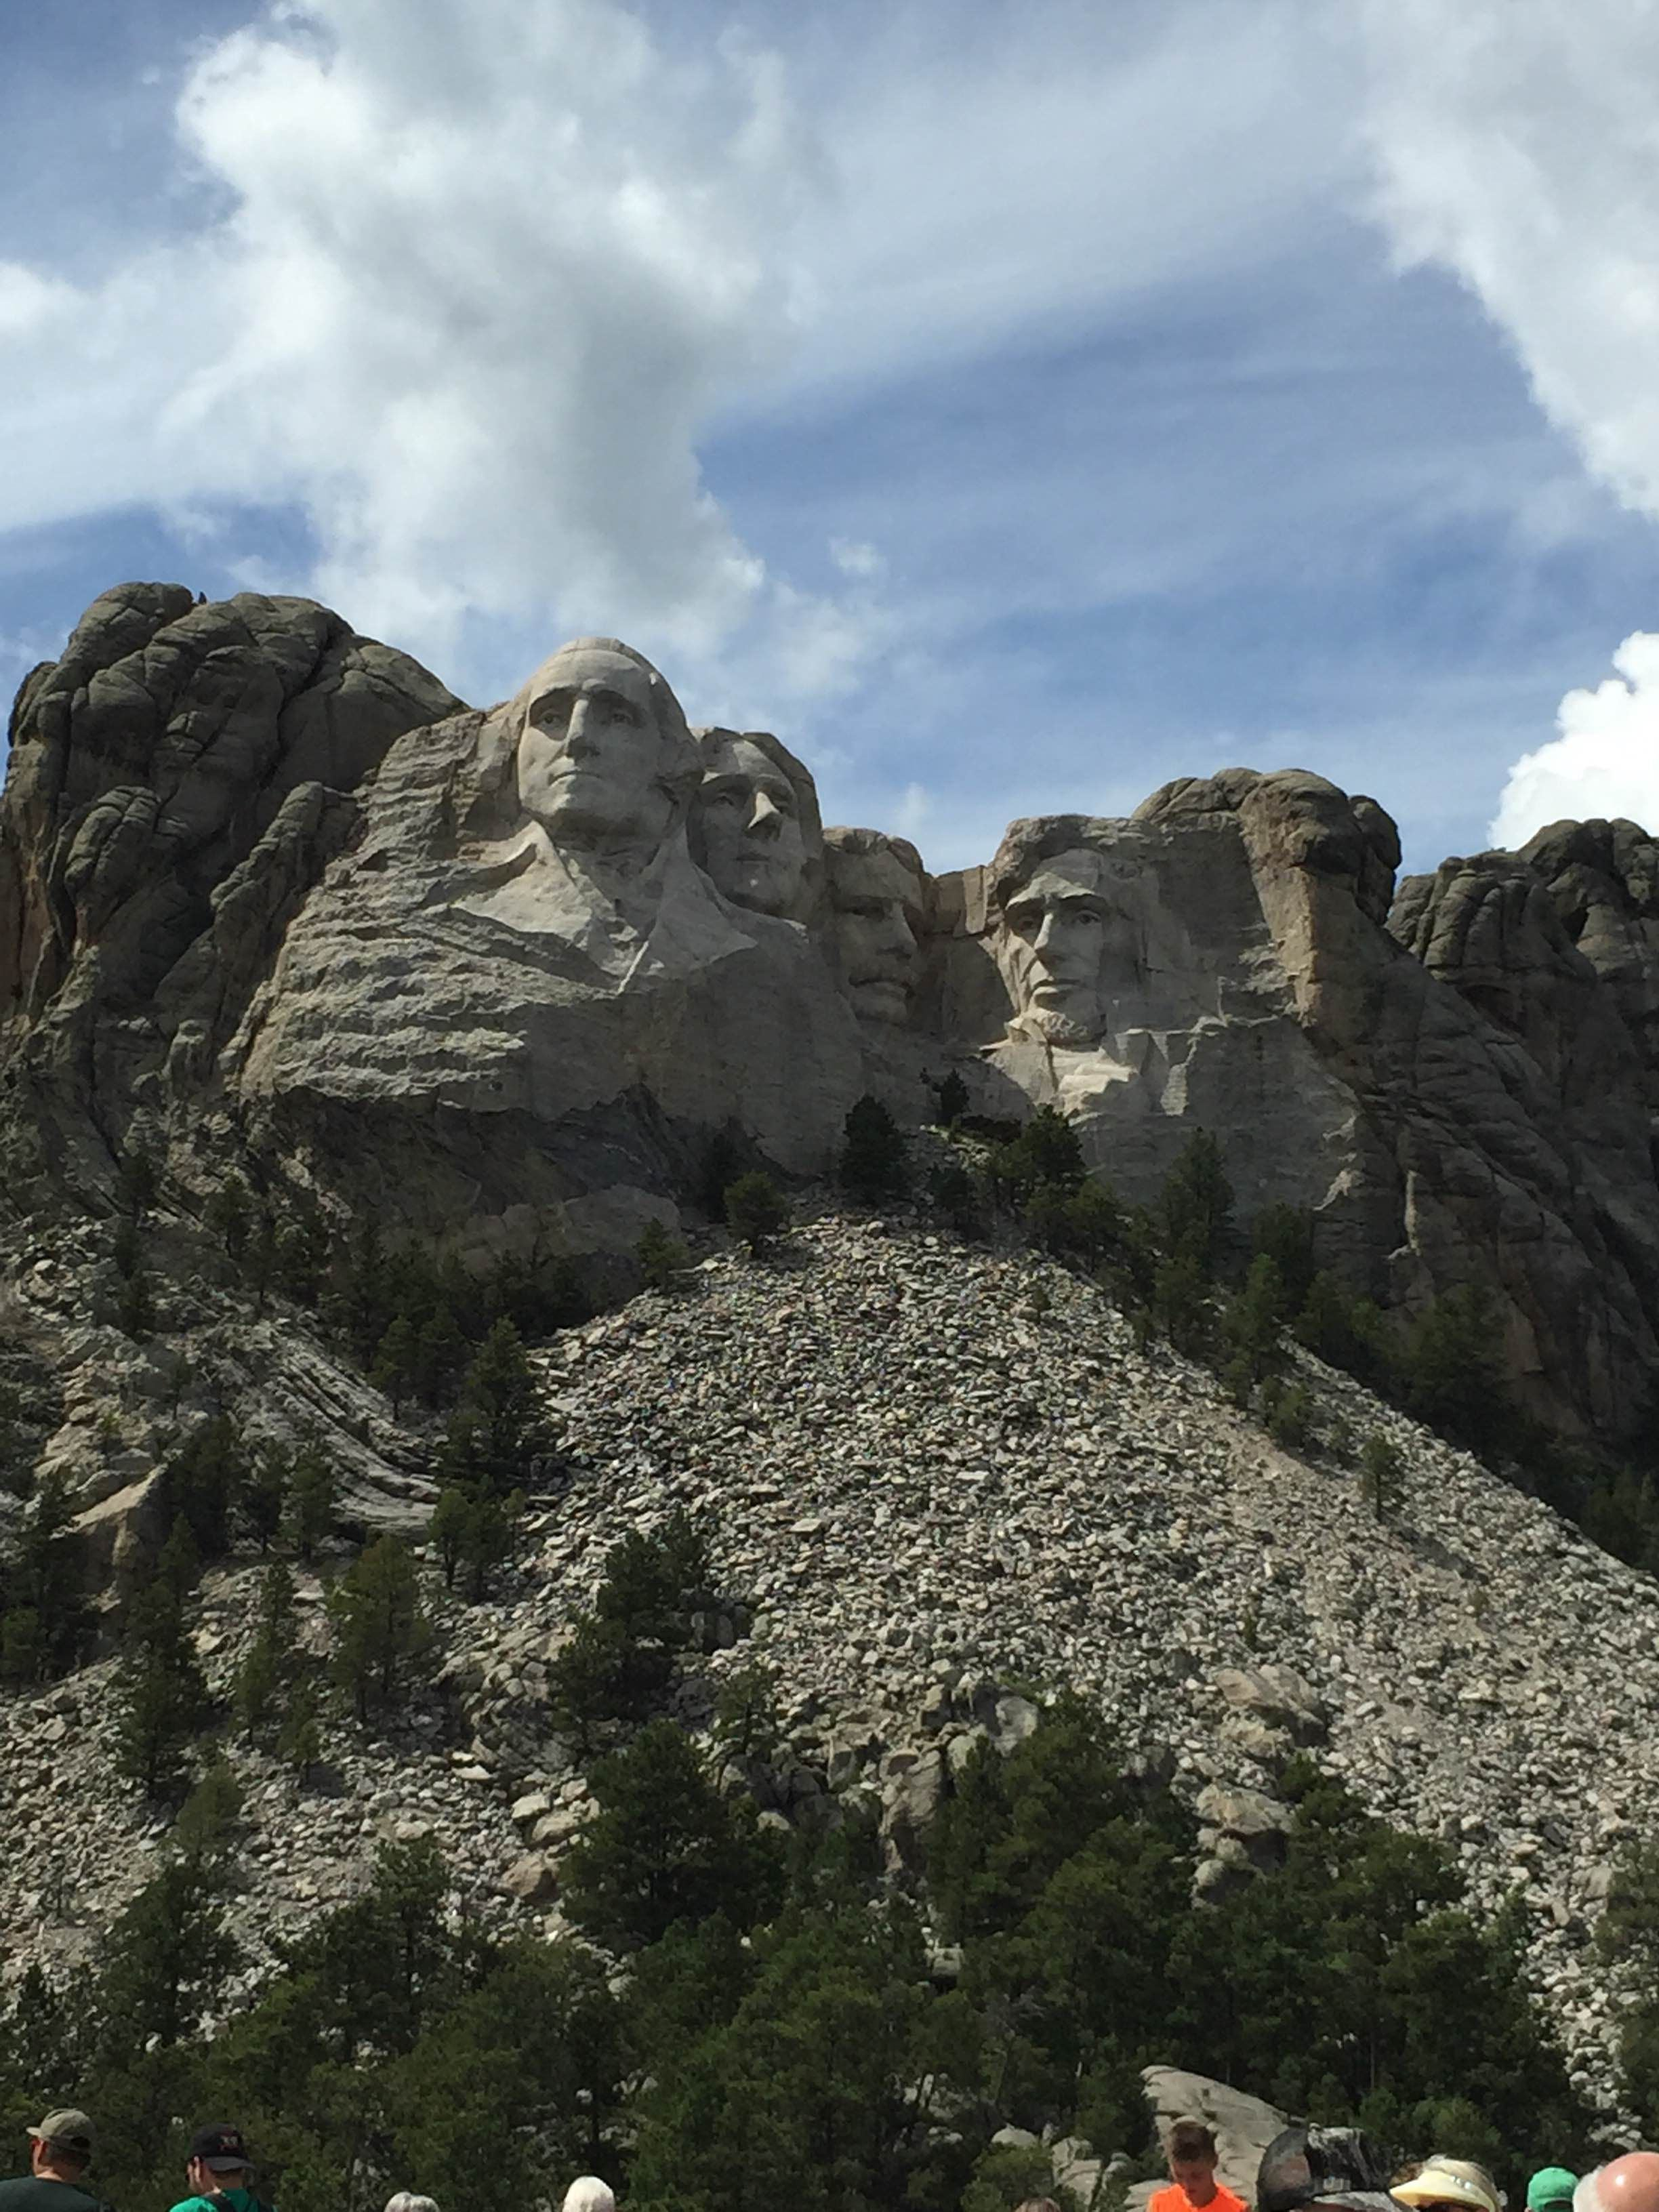 Mount Rushmore Memorial